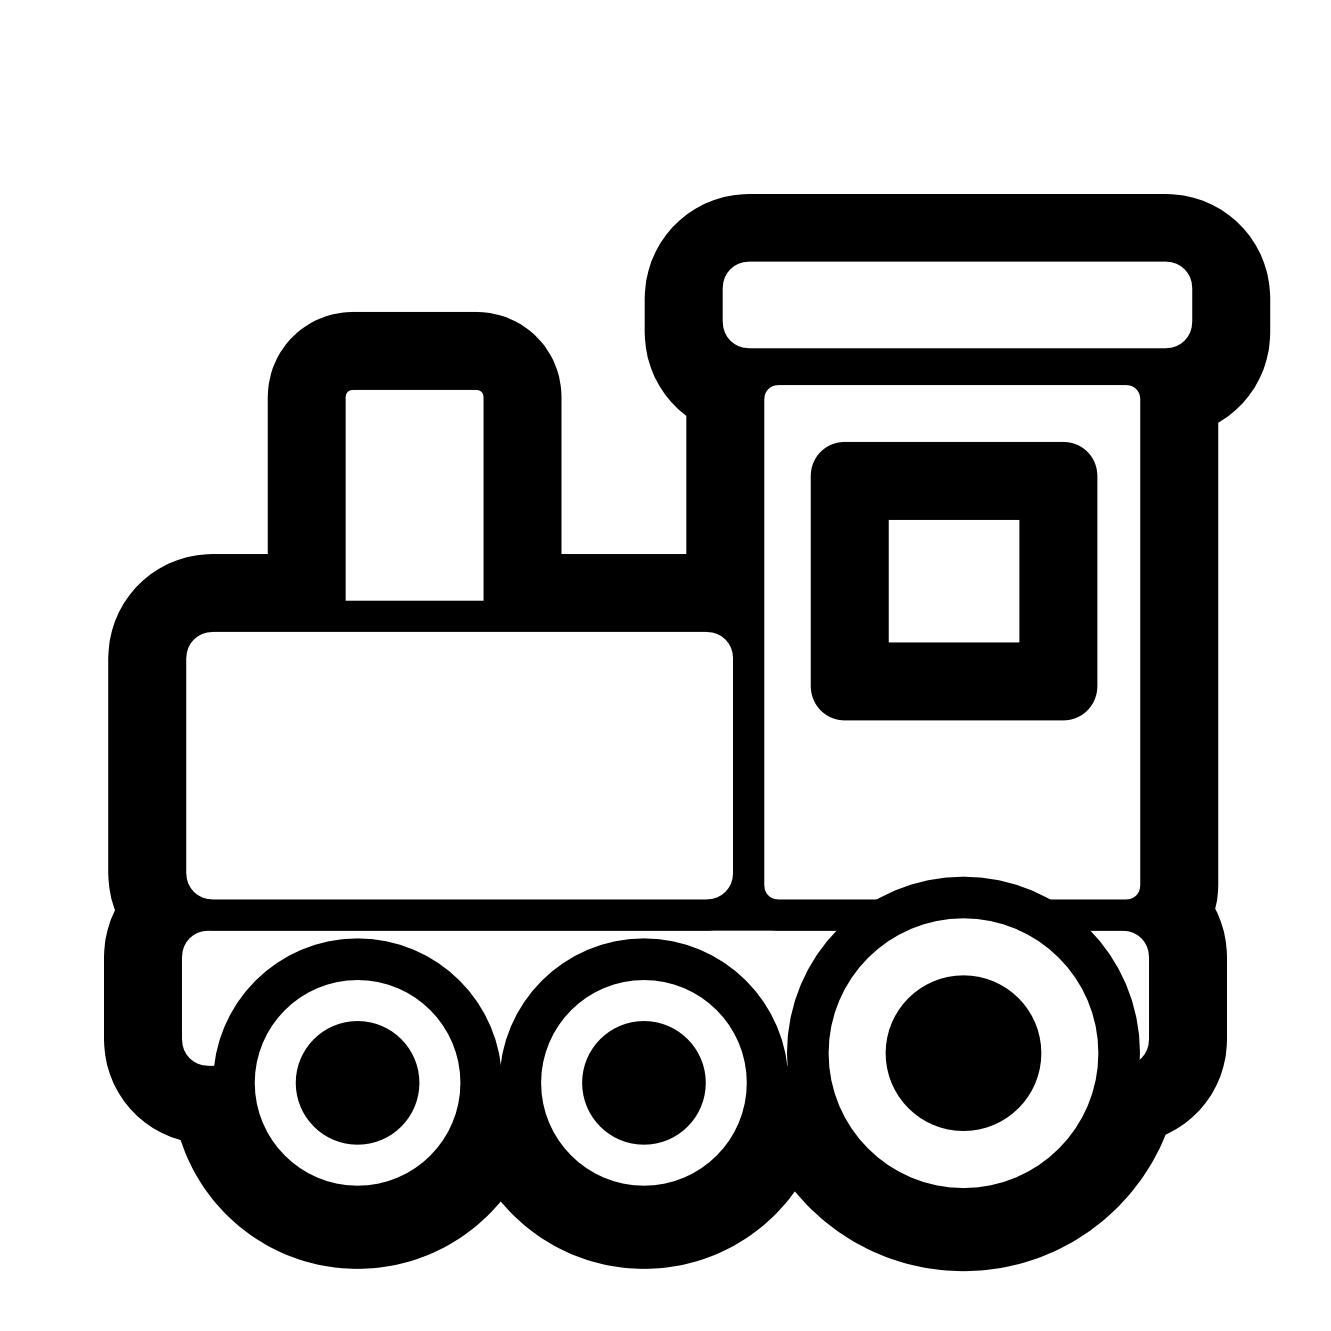 Free Train Engine Clipart Black And White, Download Free.